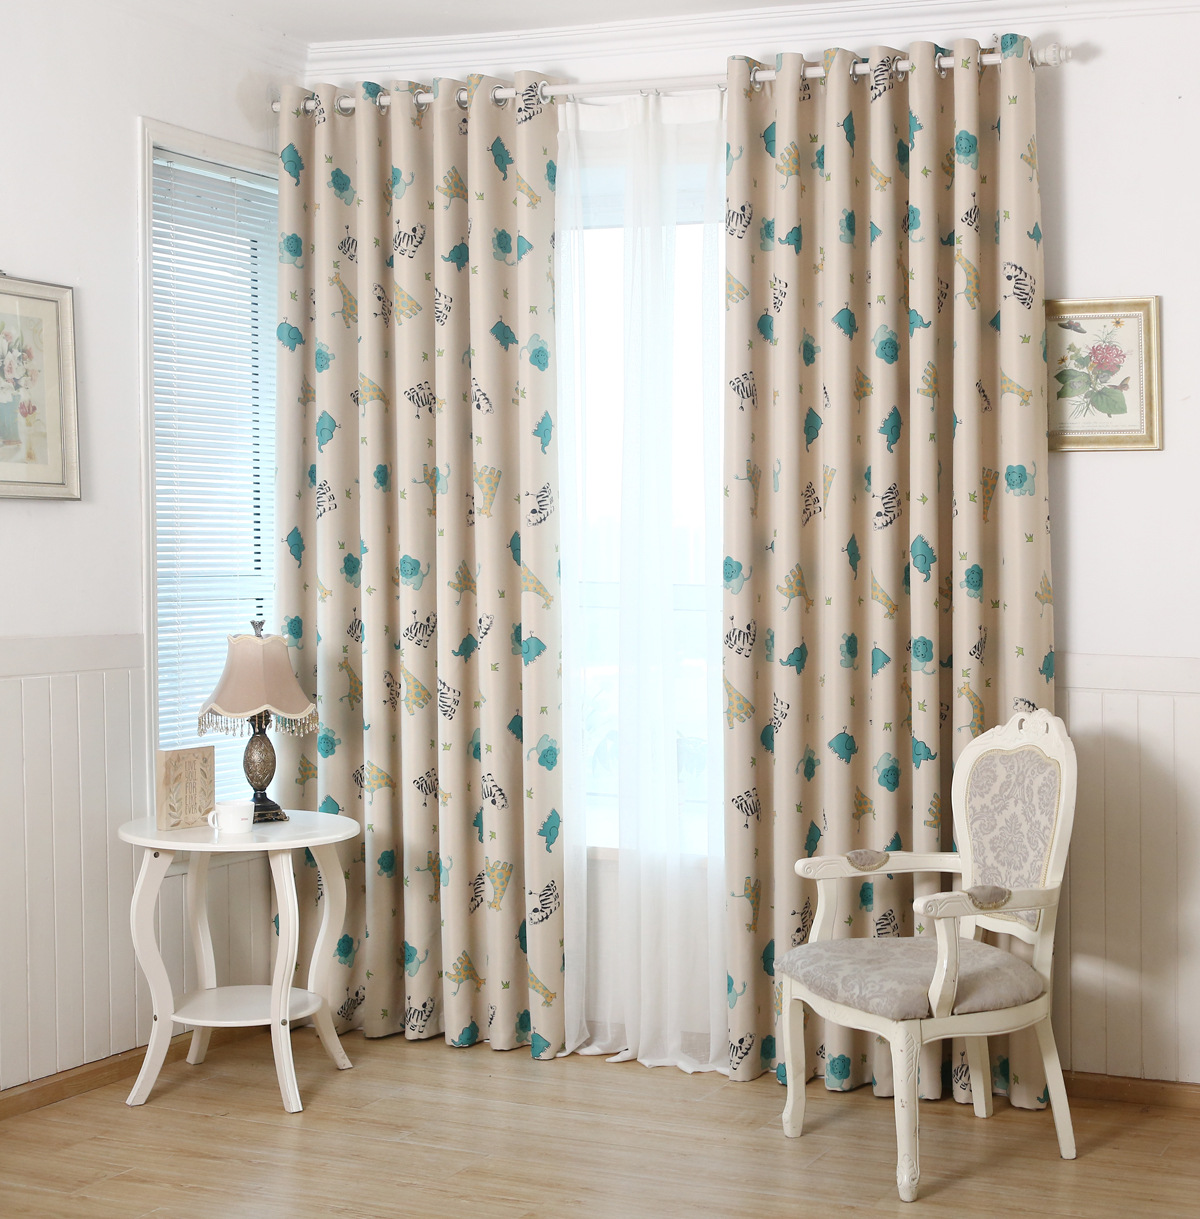 Living Room Blinds And Curtains Blinds Curtains Drapes Promotion Shop For Promotional Blinds